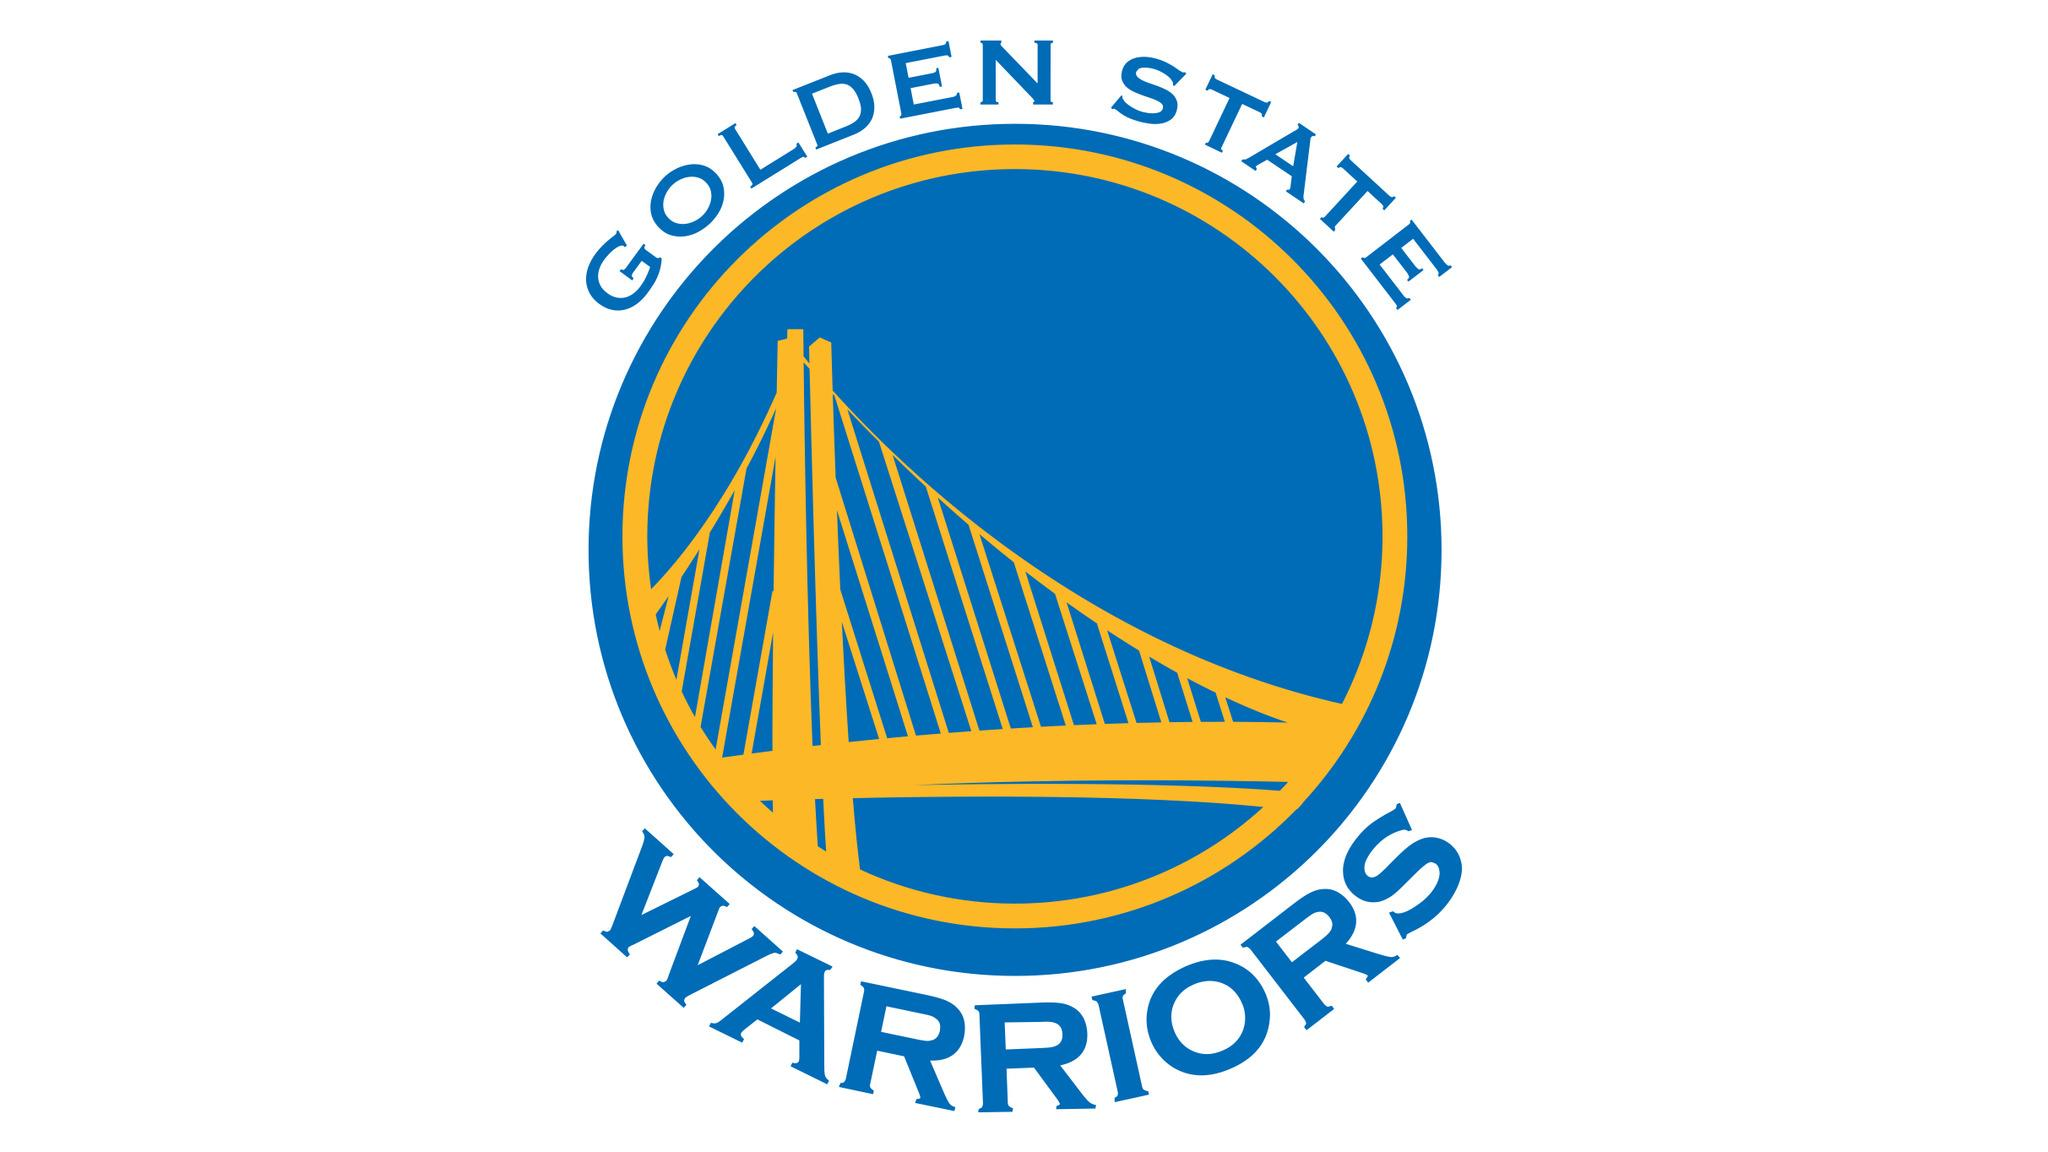 Golden State Warriors vs. Denver Nuggets at Oracle Arena